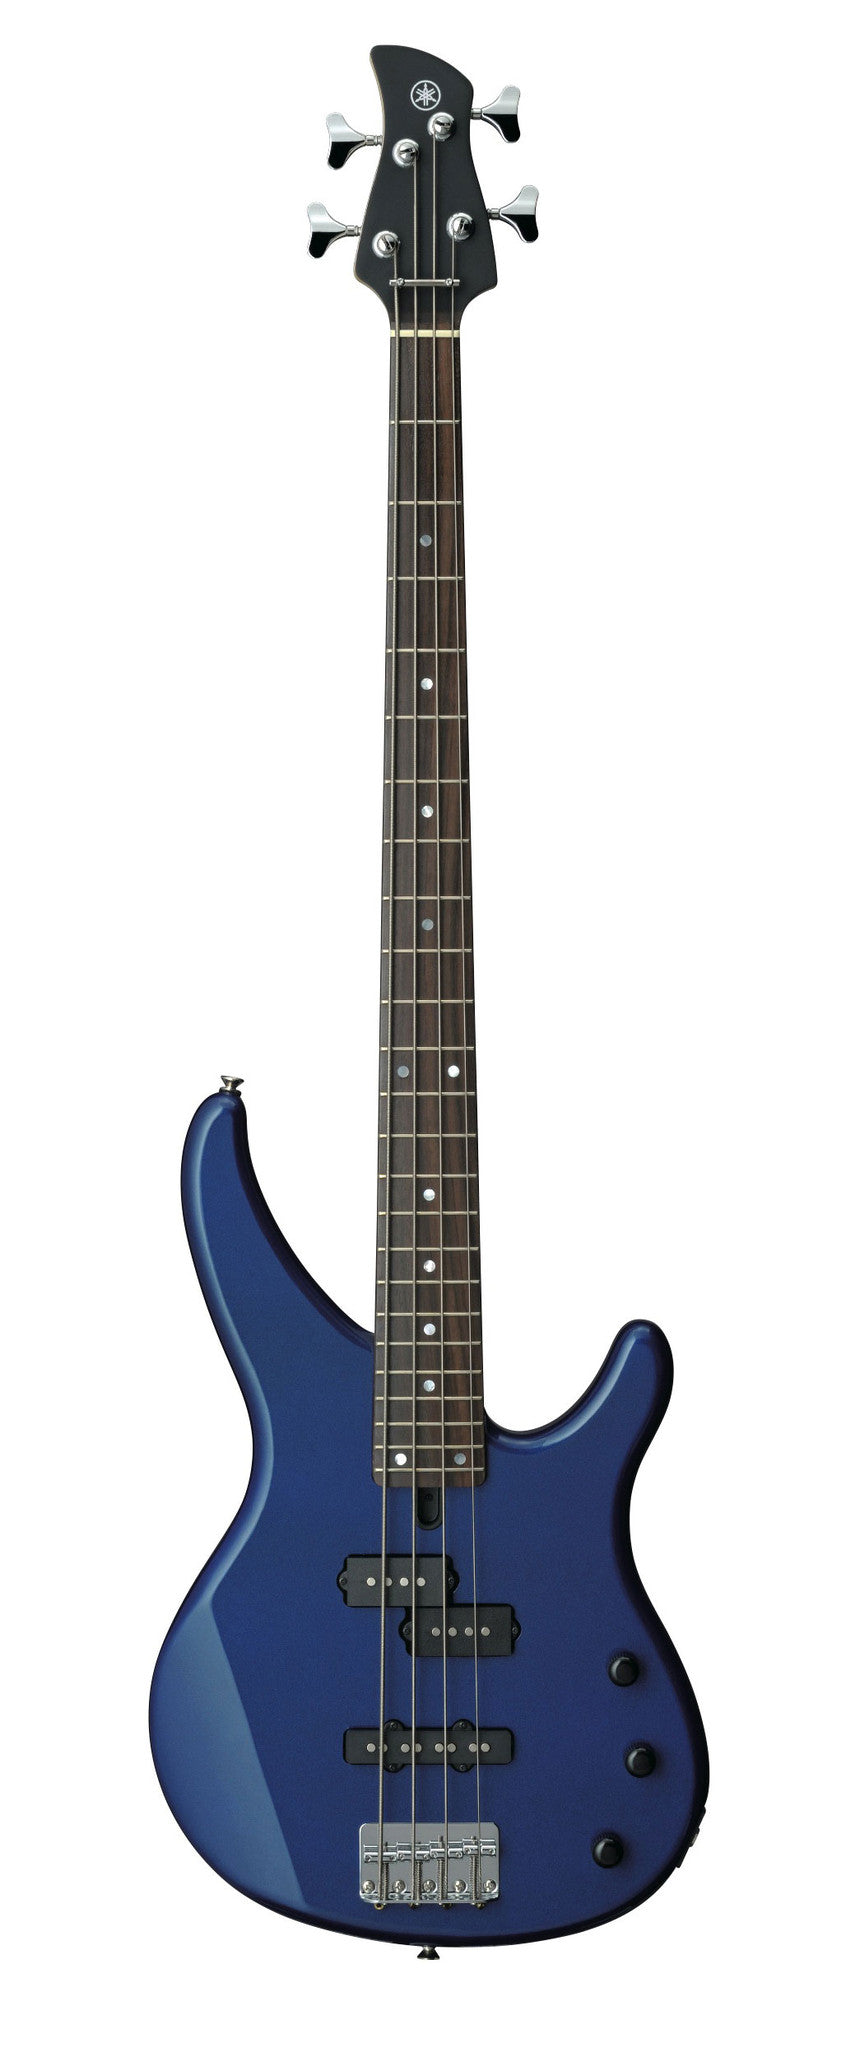 Yamaha TRBX174 4-String Bass Guitar Dark Blue